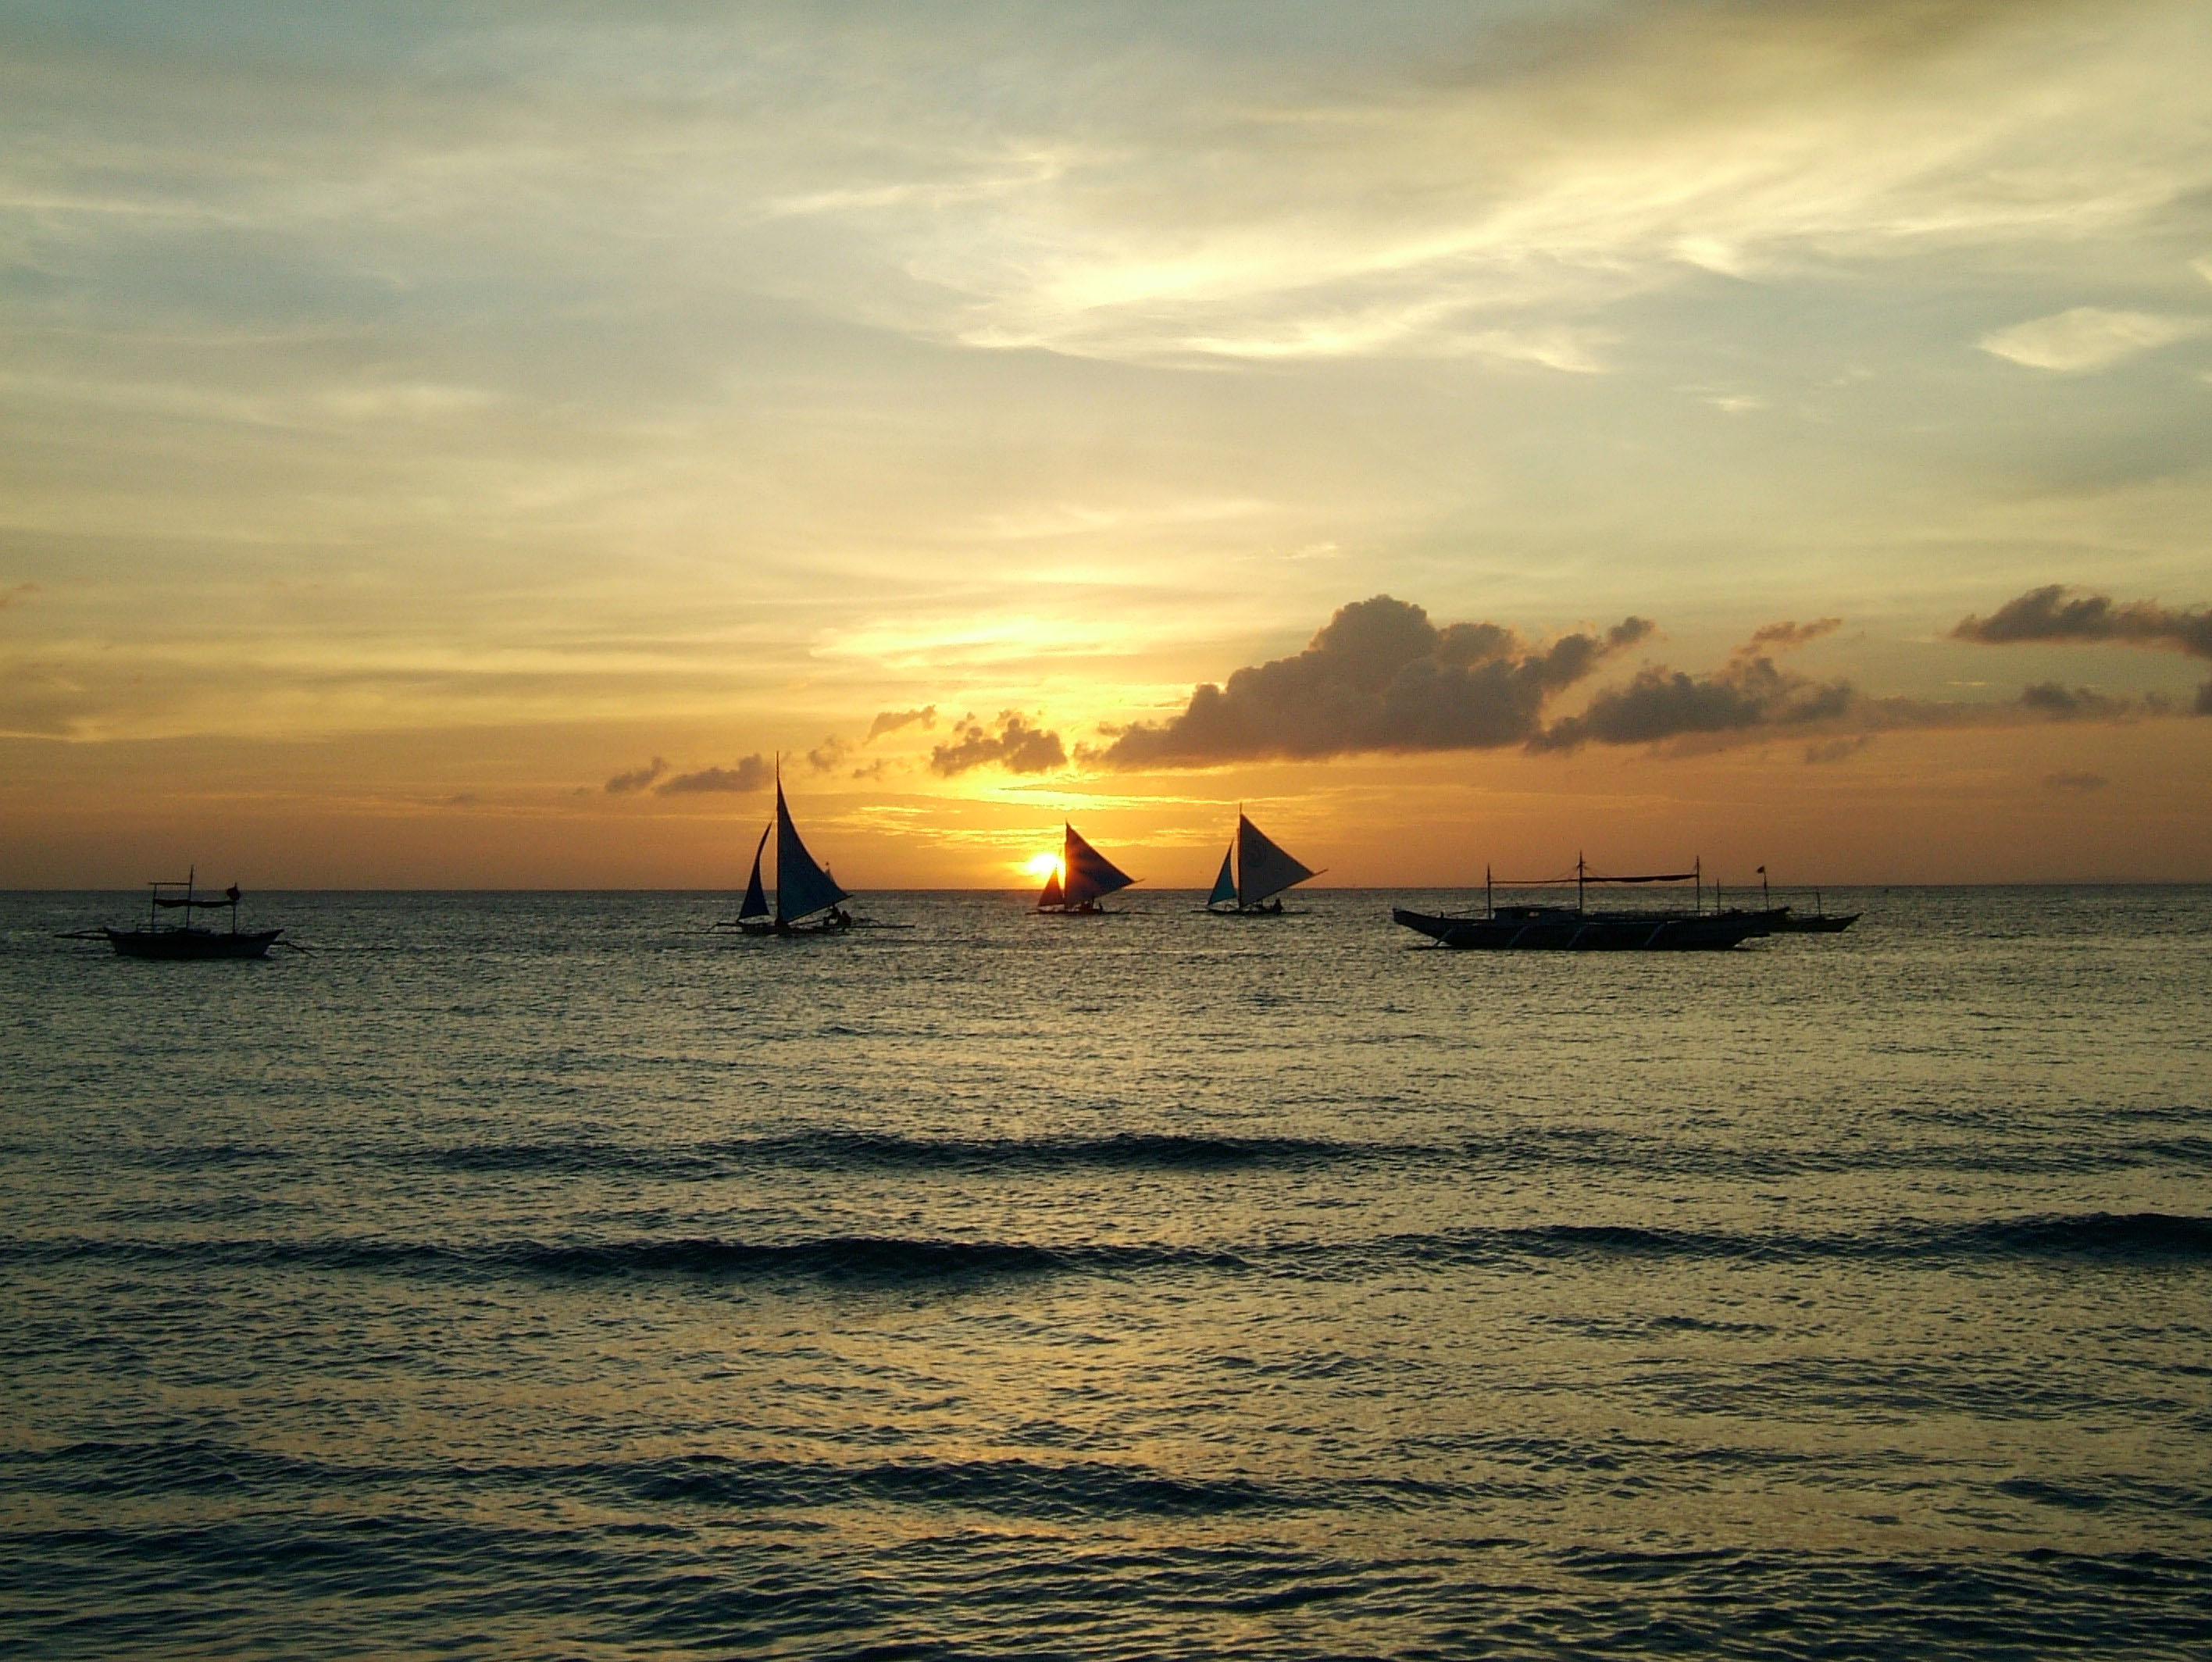 Sunset Philippines Boracay Beach 26